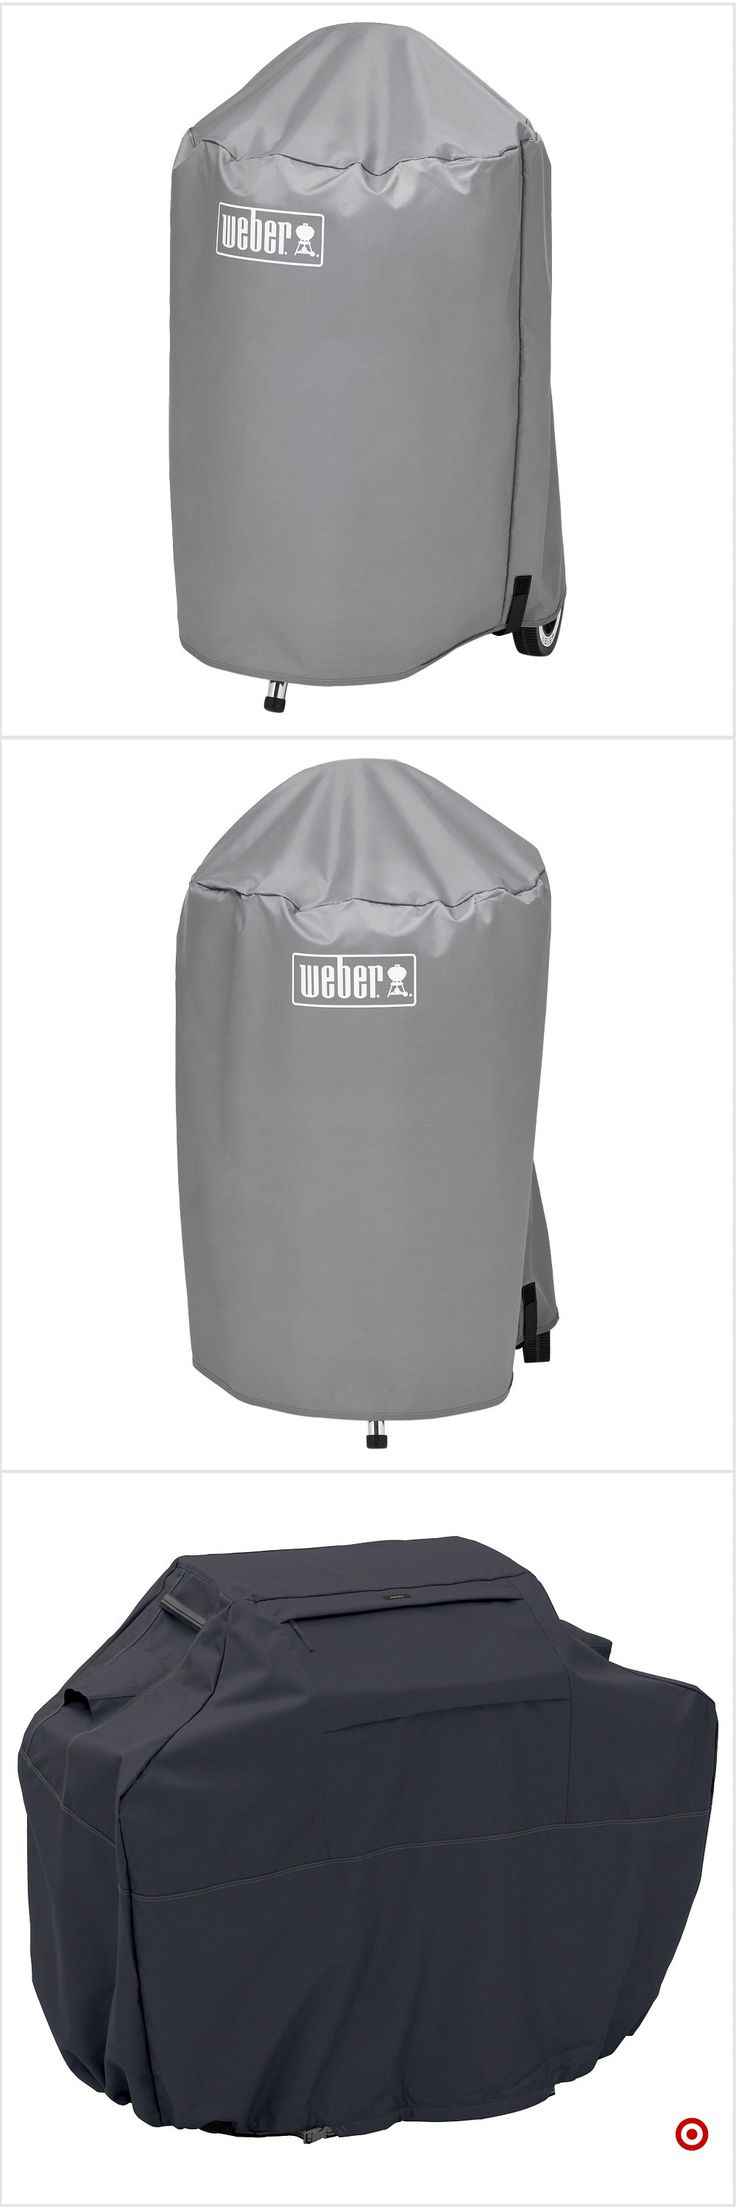 Shop Target for grill cover you will love at great low prices. Free shipping on orders of $35+ or free same-day pick-up in store.